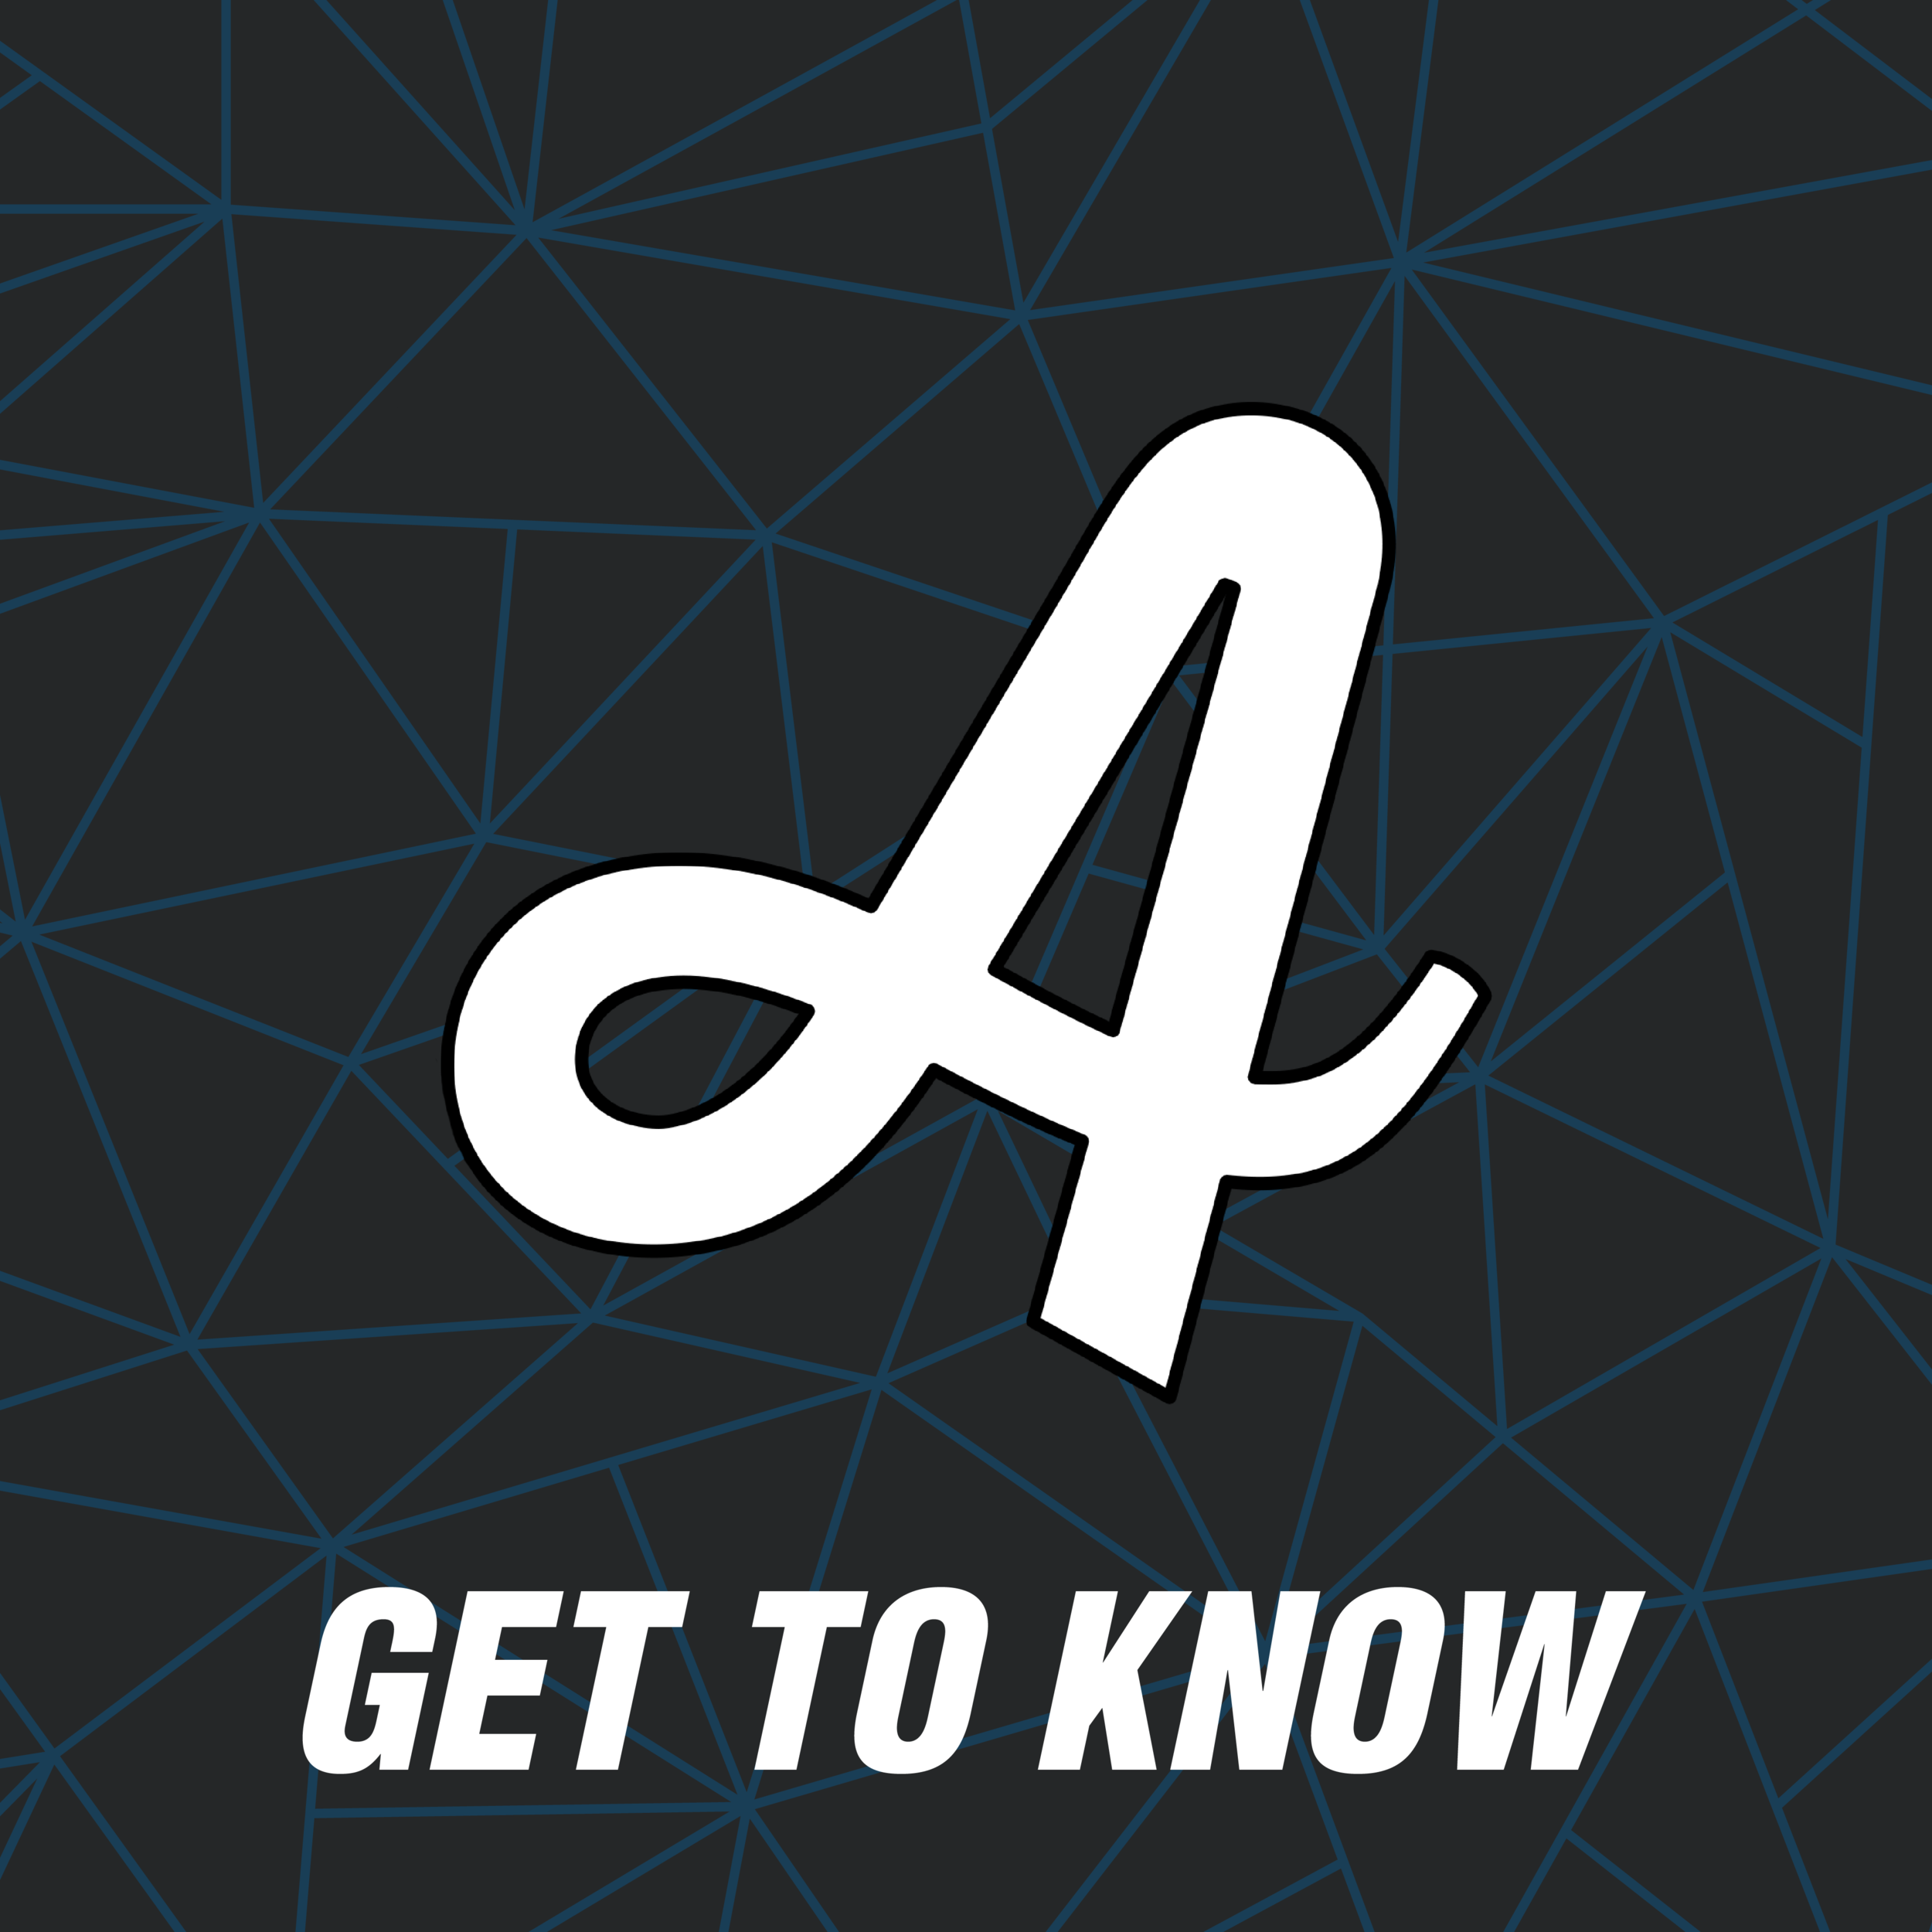 ANNECY GET TO KNOW-01.png